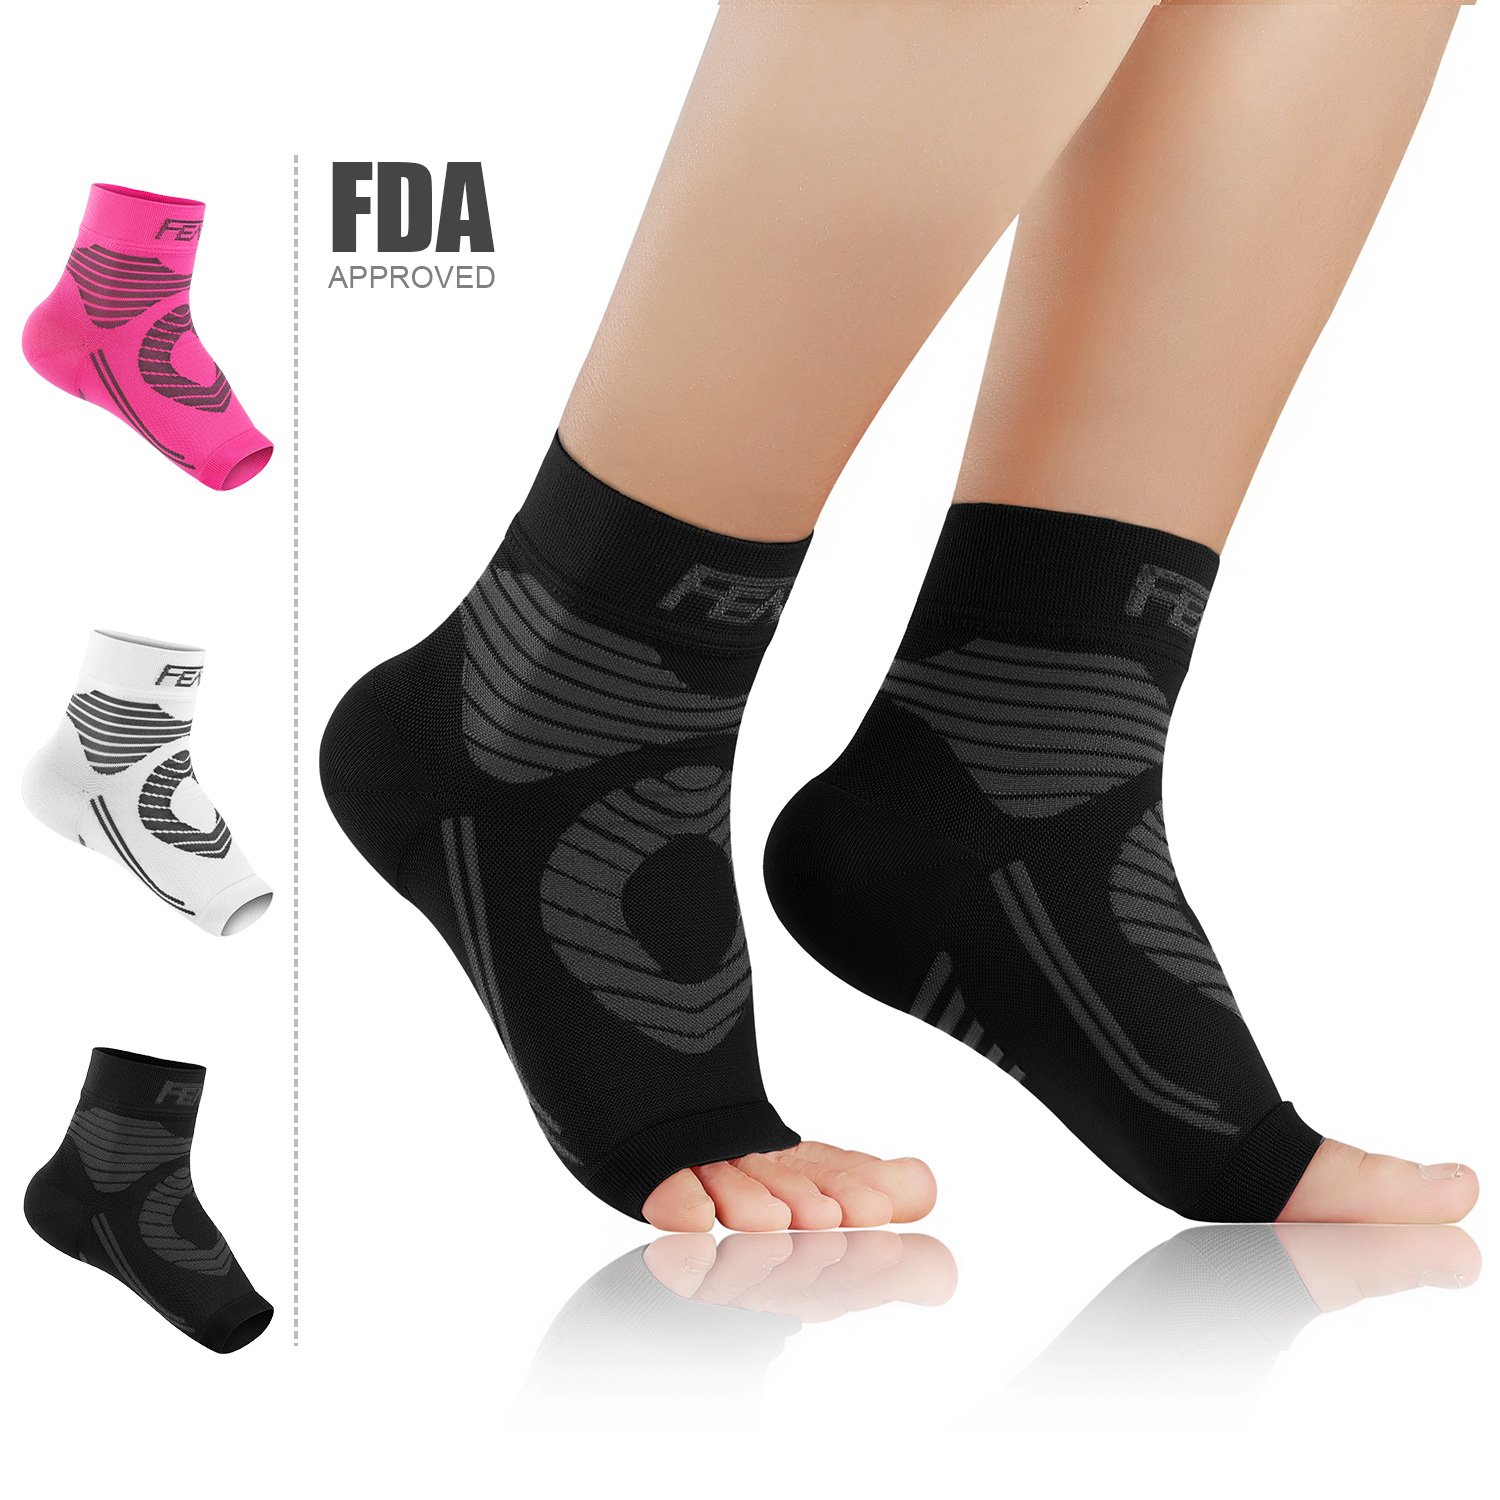 Plantar Fasciitis Socks with Arch Support (1 Pair) Graduated 20 30 mmHg Compression Sleeve Ankle Support Foot Sleeve Better than Night Splint,Increases Circulation, Relieve Pain Fast